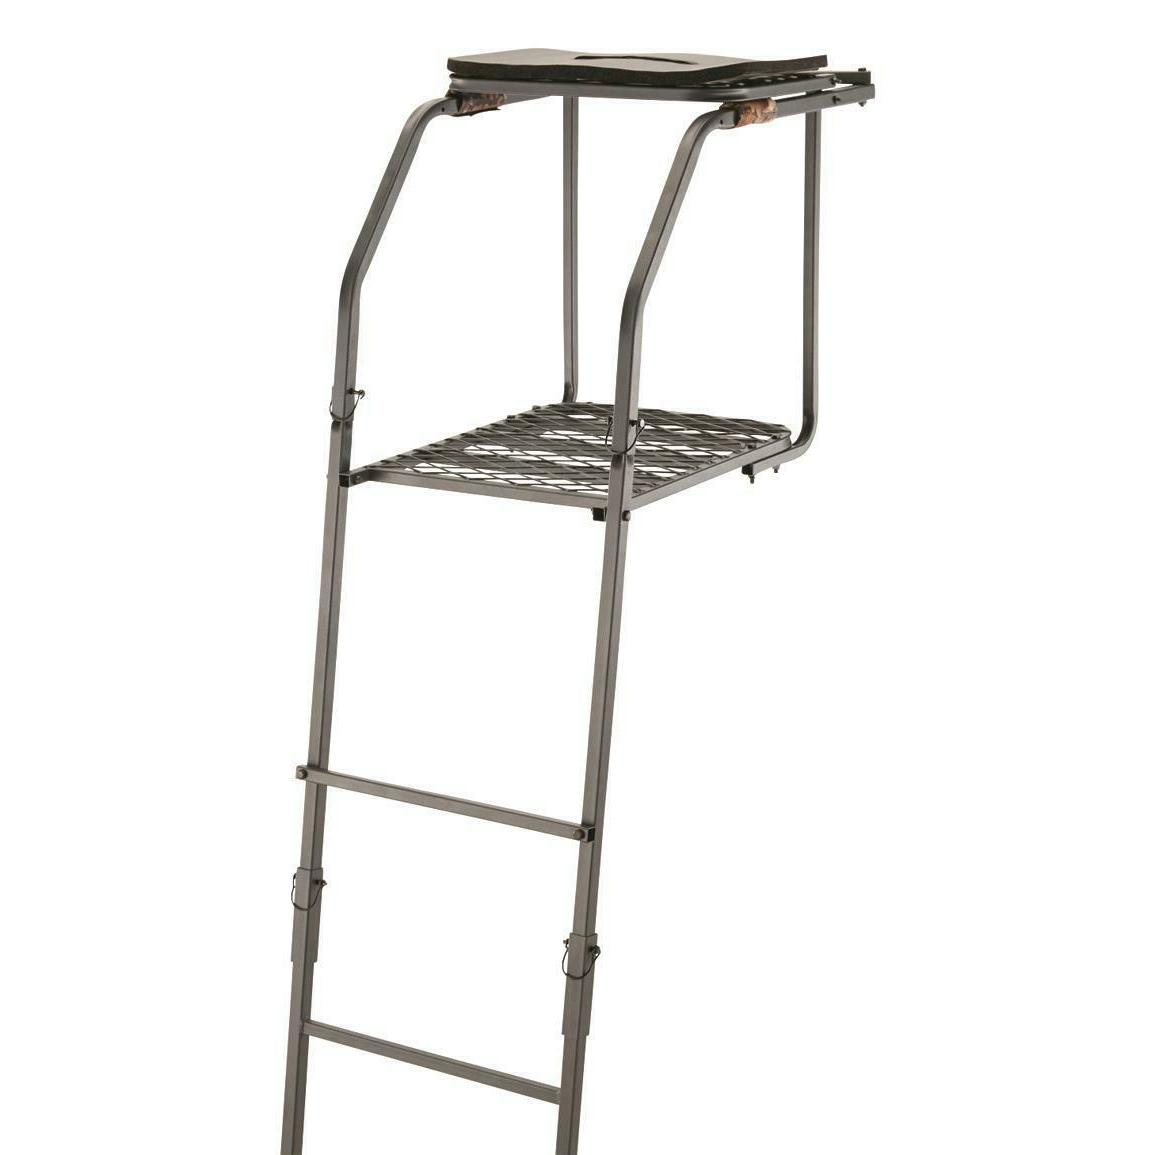 Guide 18' Ladder Tree Stand